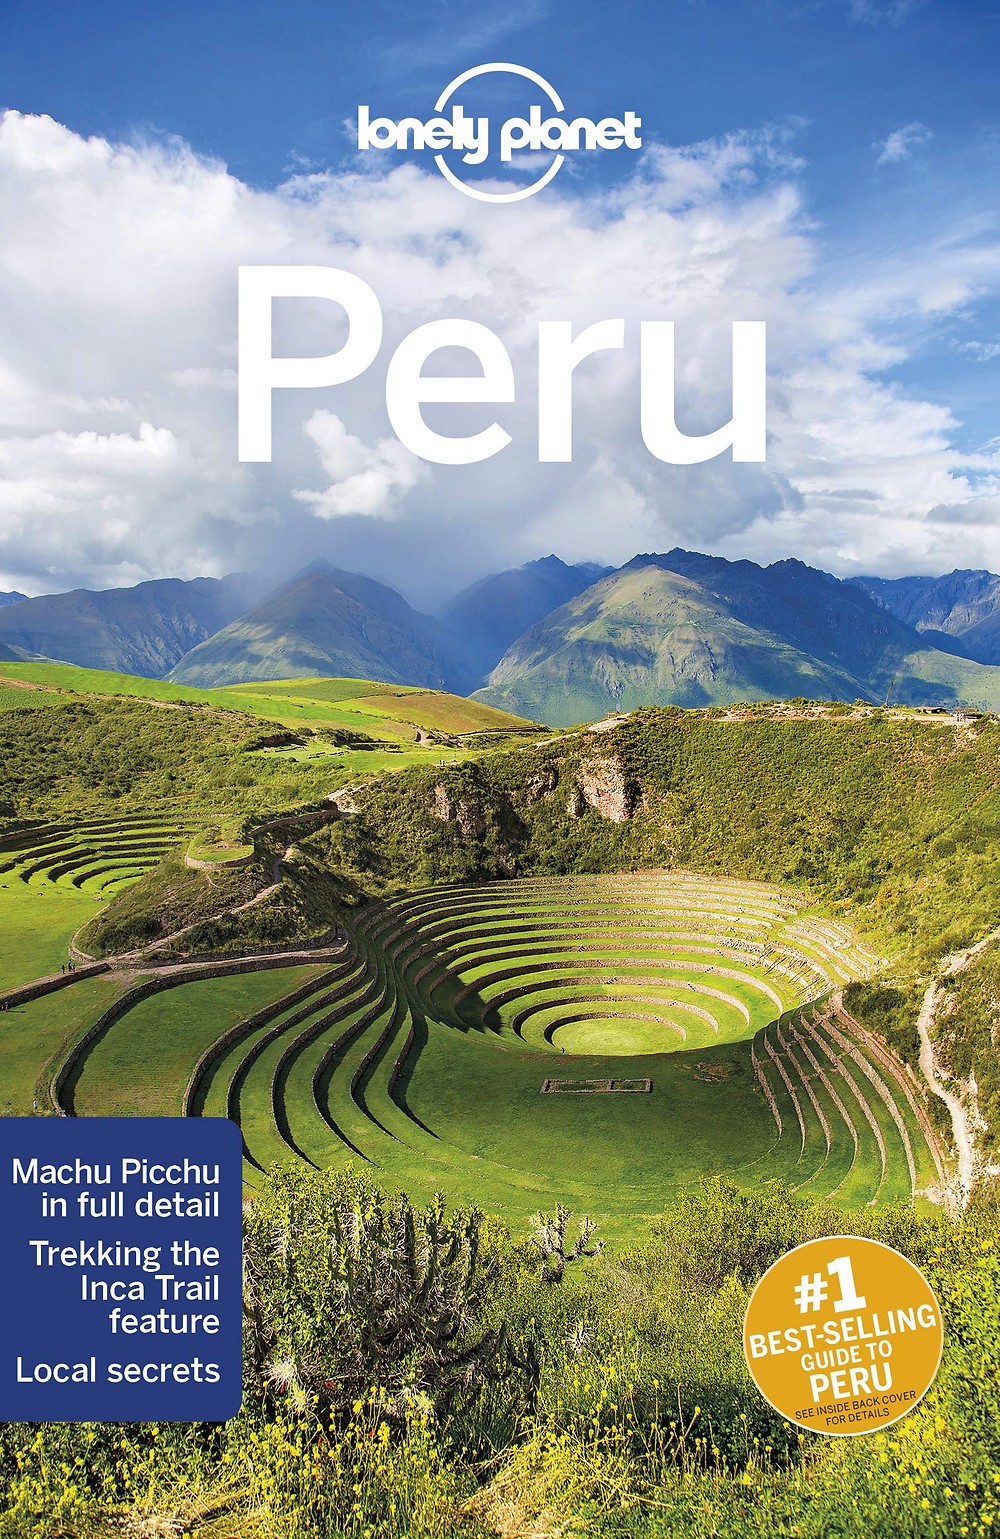 Lonely planet marcahuasi and peru guide